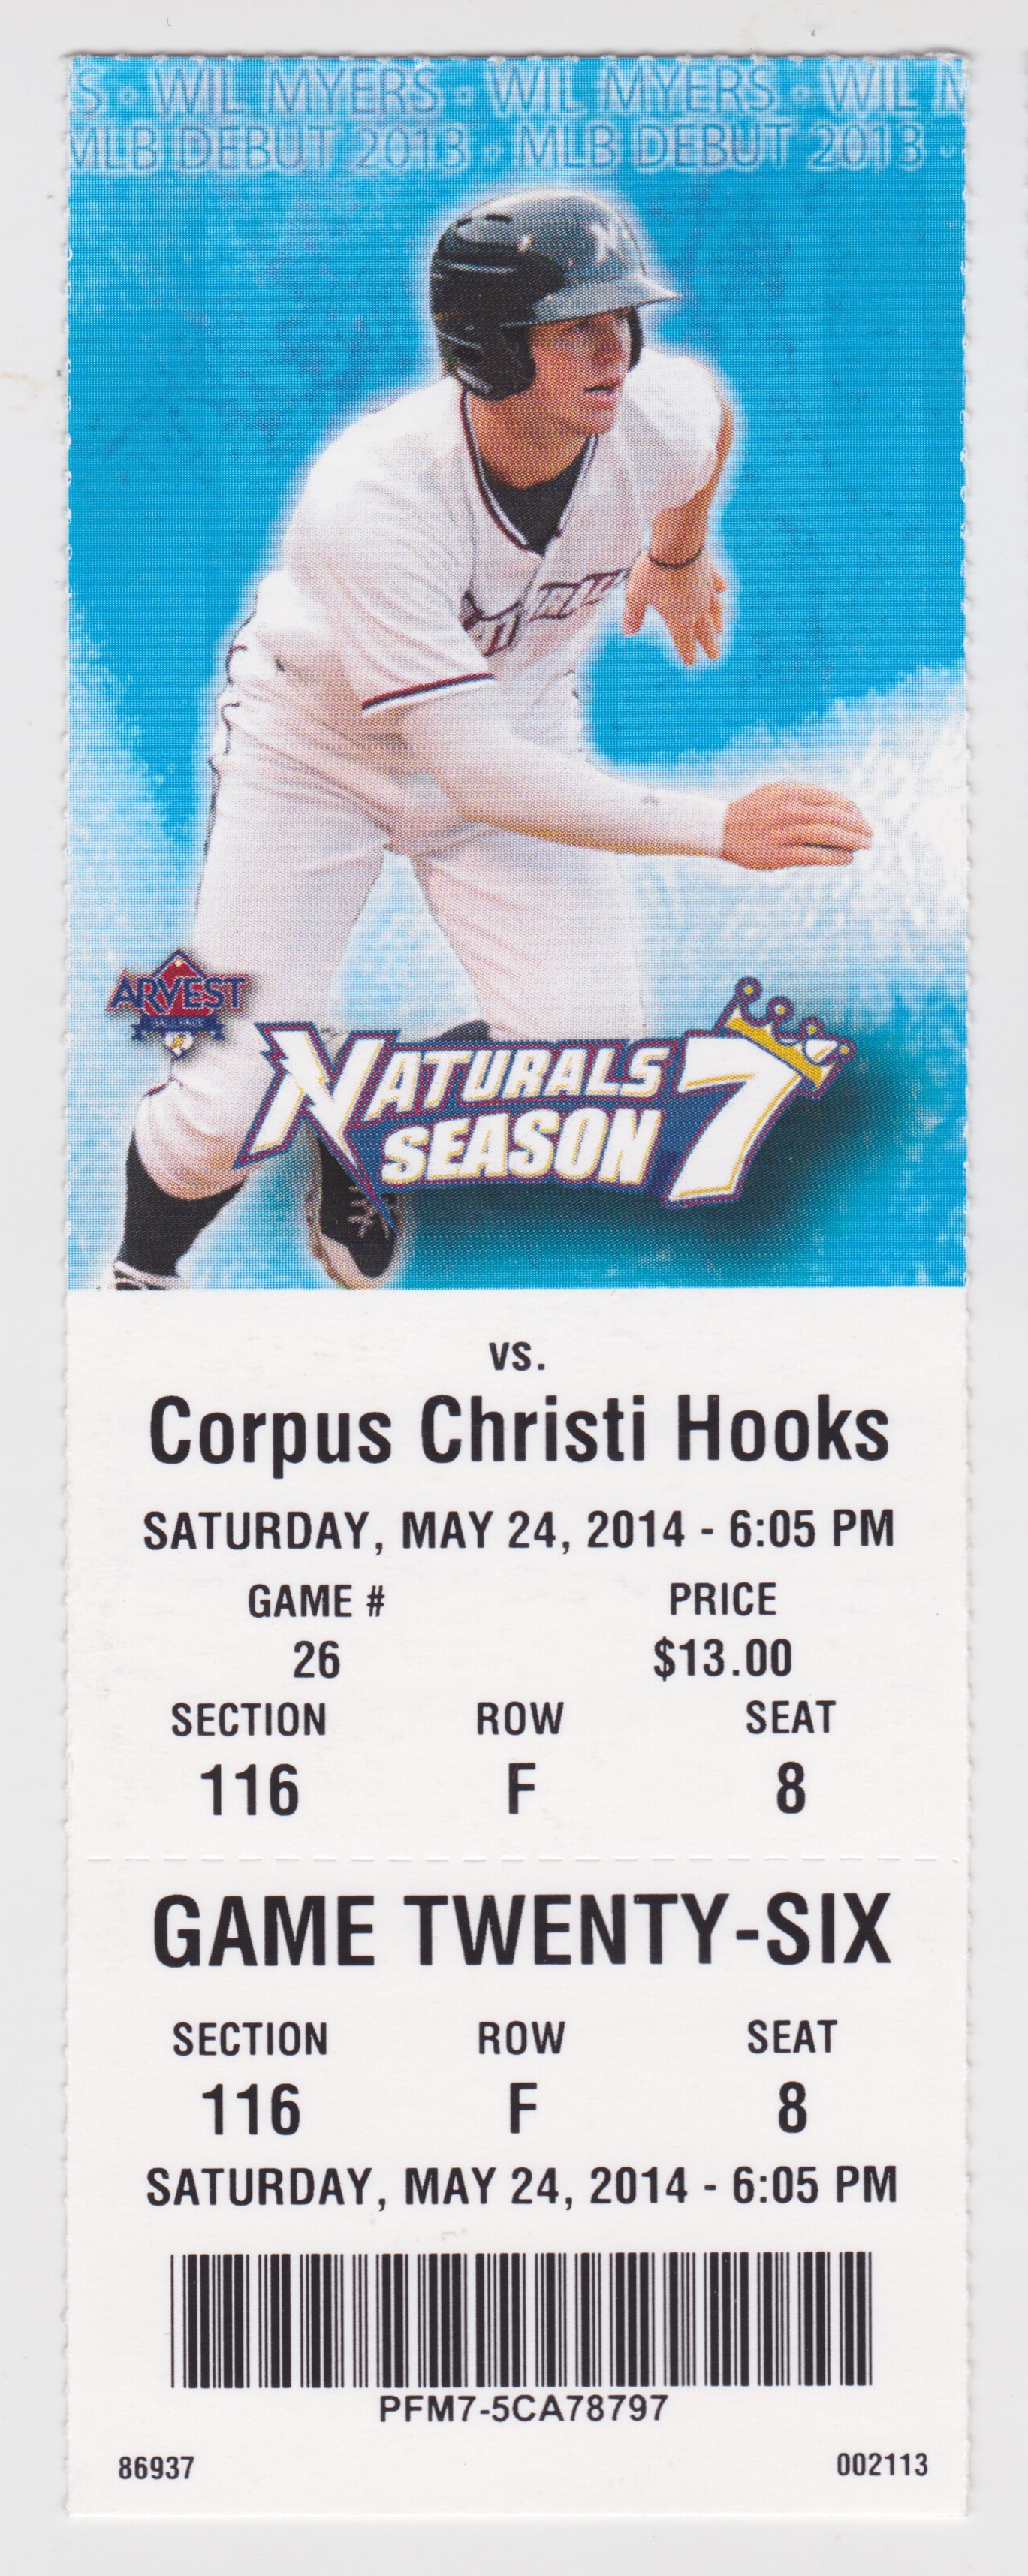 2014 MiLB Texas League Corpus Christi Hooks at Northwest Arkansas Naturals ticket stub